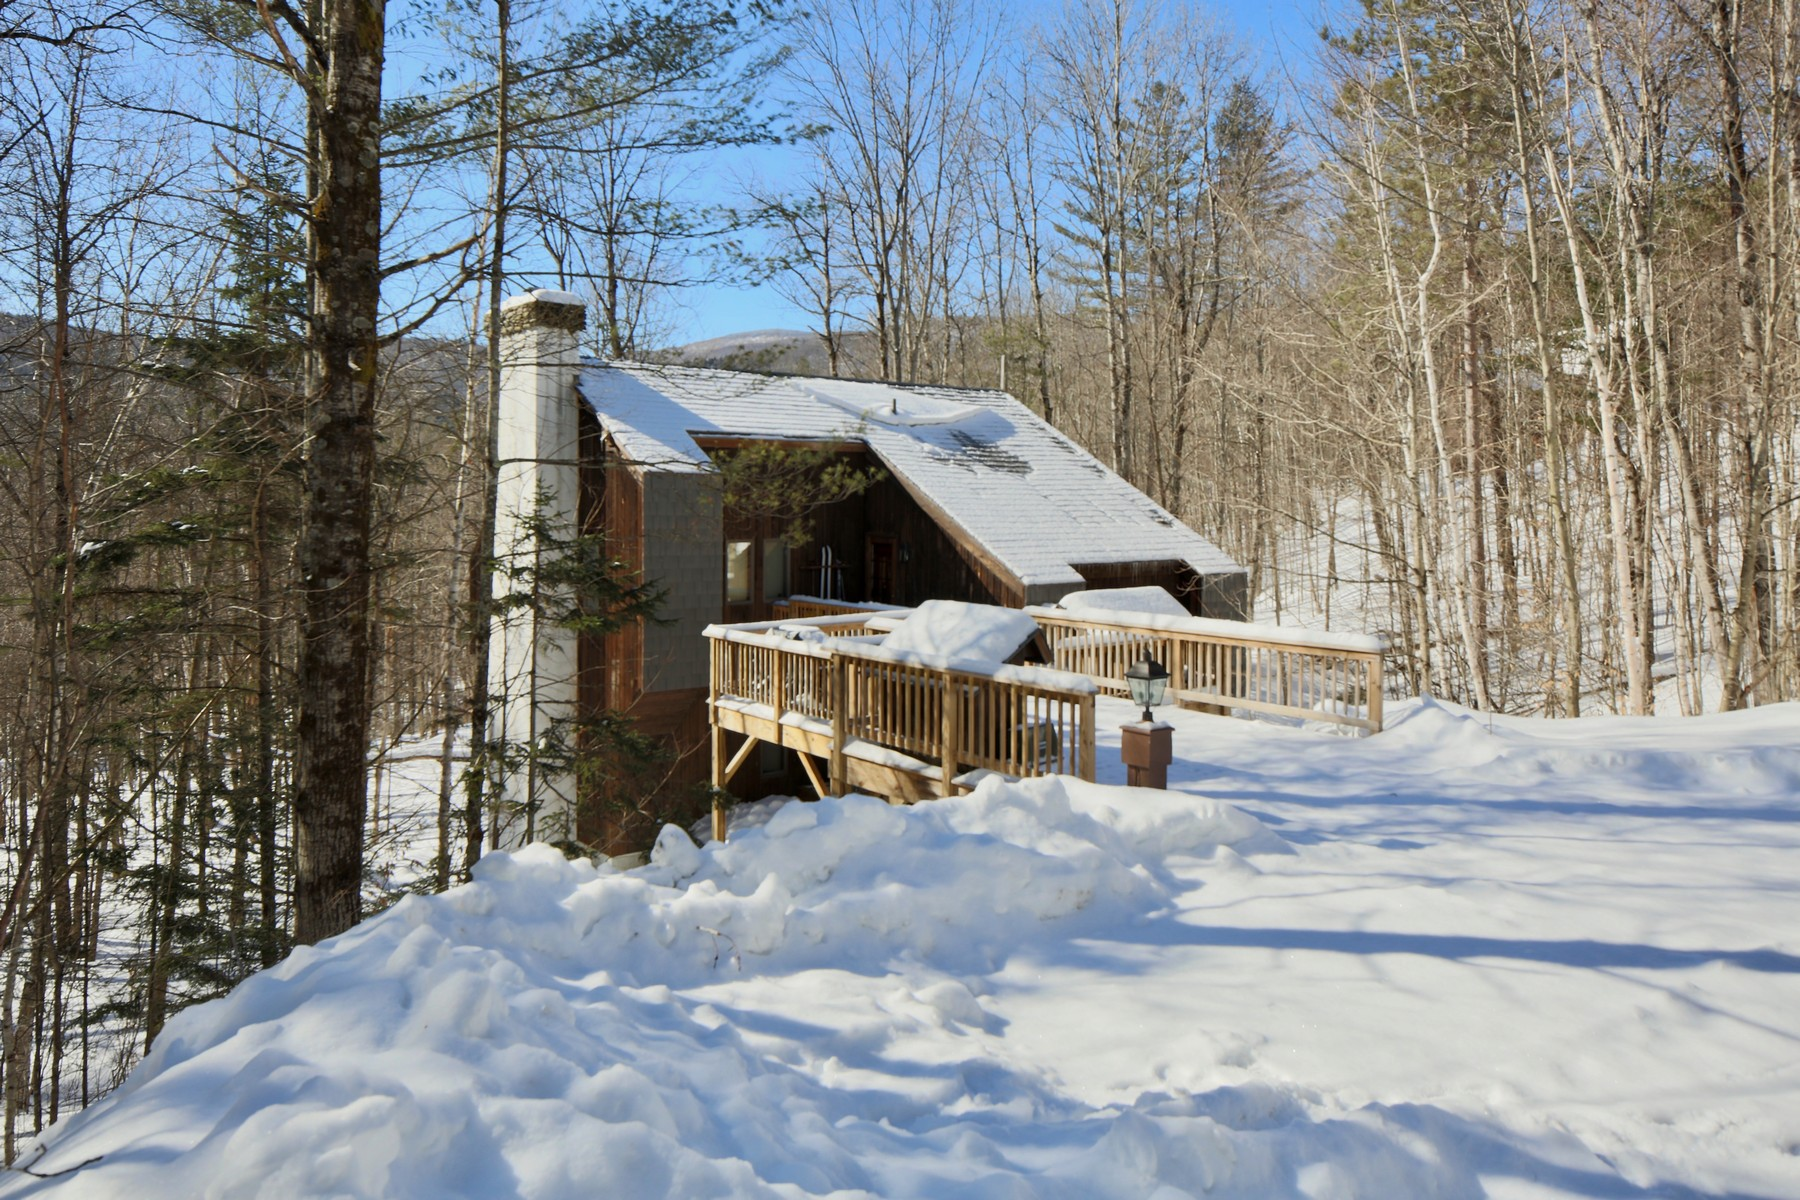 Single Family Home for Sale at Privately Set 43 Goshawk Dr Plymouth, Vermont 05056 United States